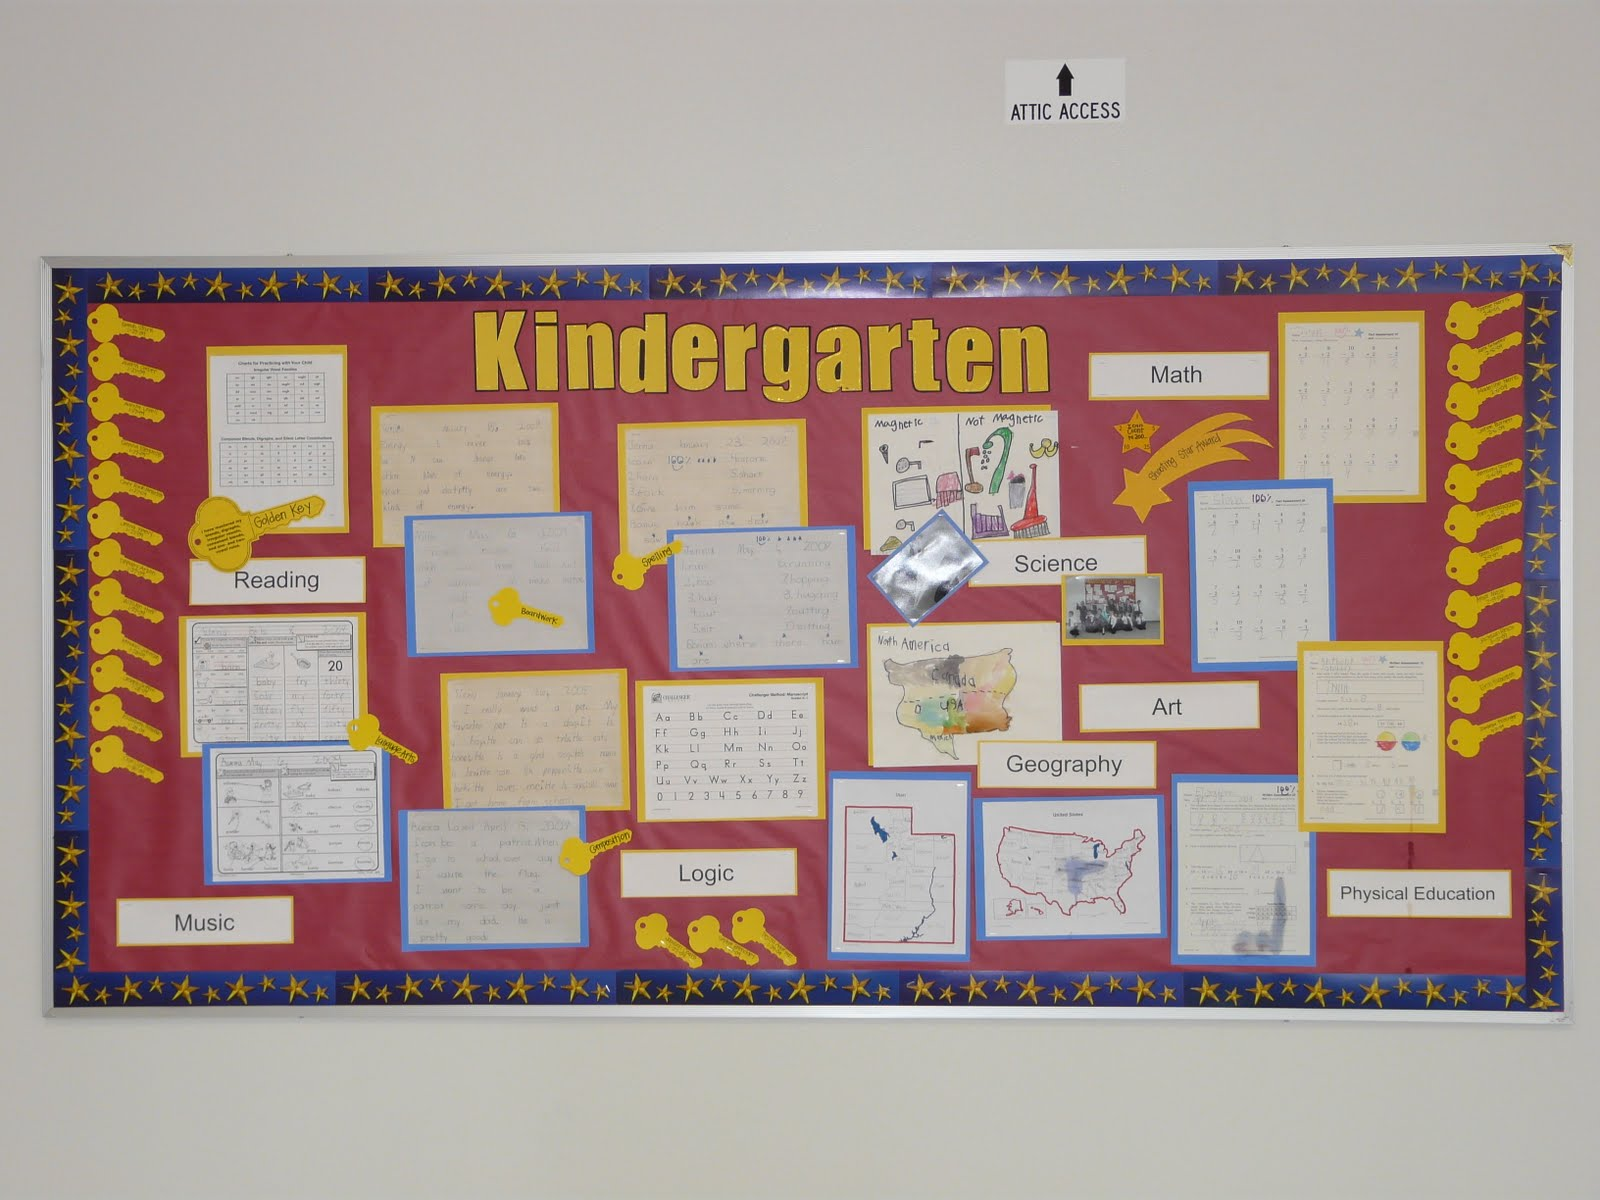 October Bulletin Board Ideas Preschool http://bulletinboardideas.blogspot.com/2009/11/kindergarten.html